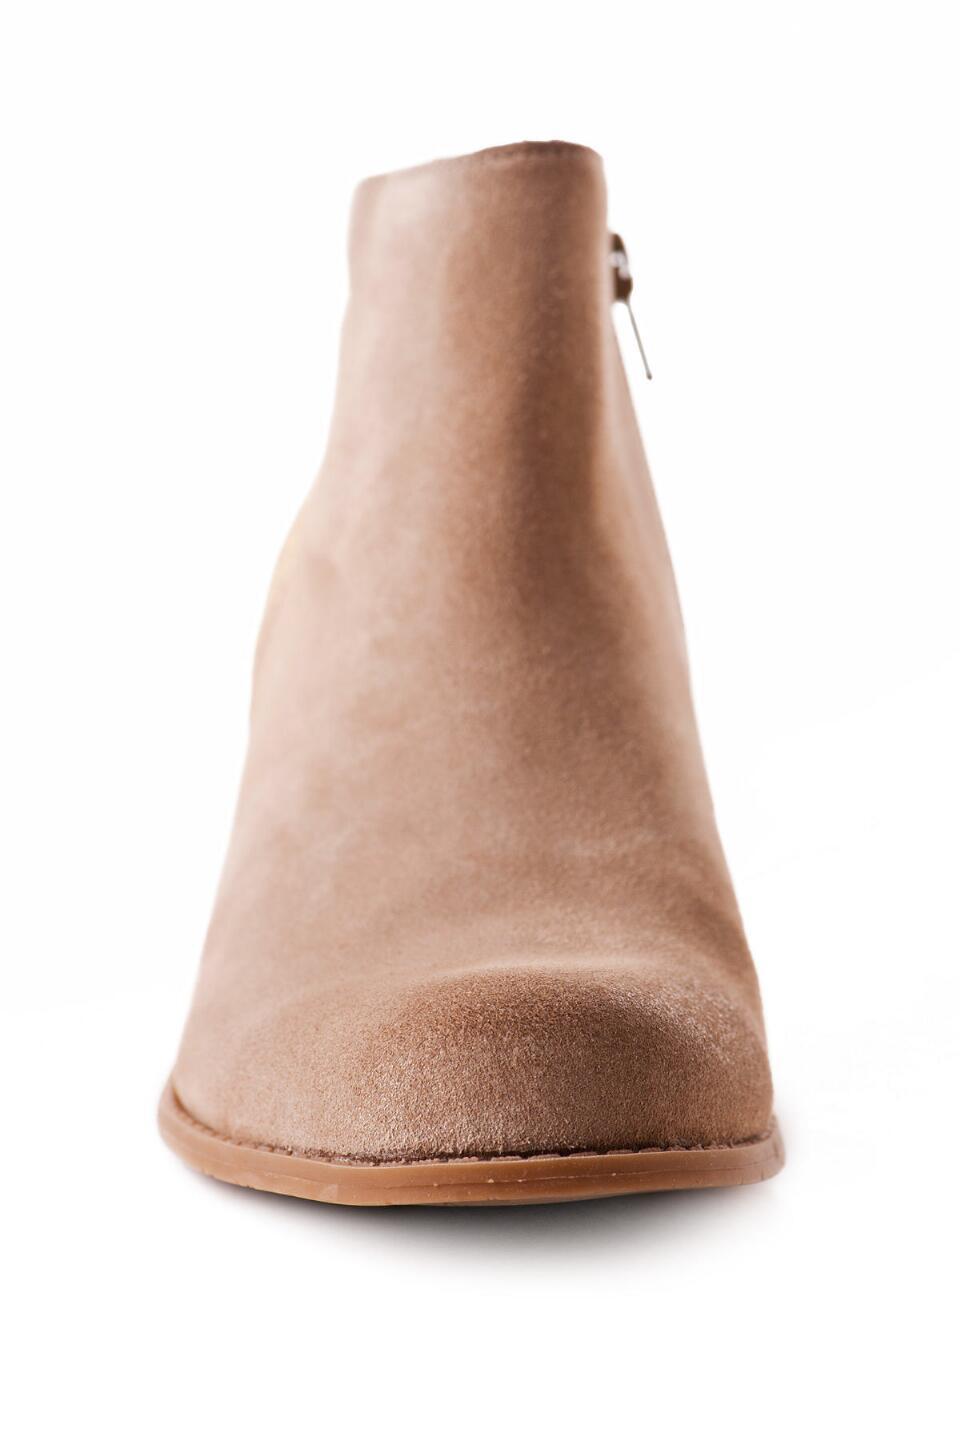 BC Footwear Shoes, Eager Beaver Metallic Bootie-  sand-clfront